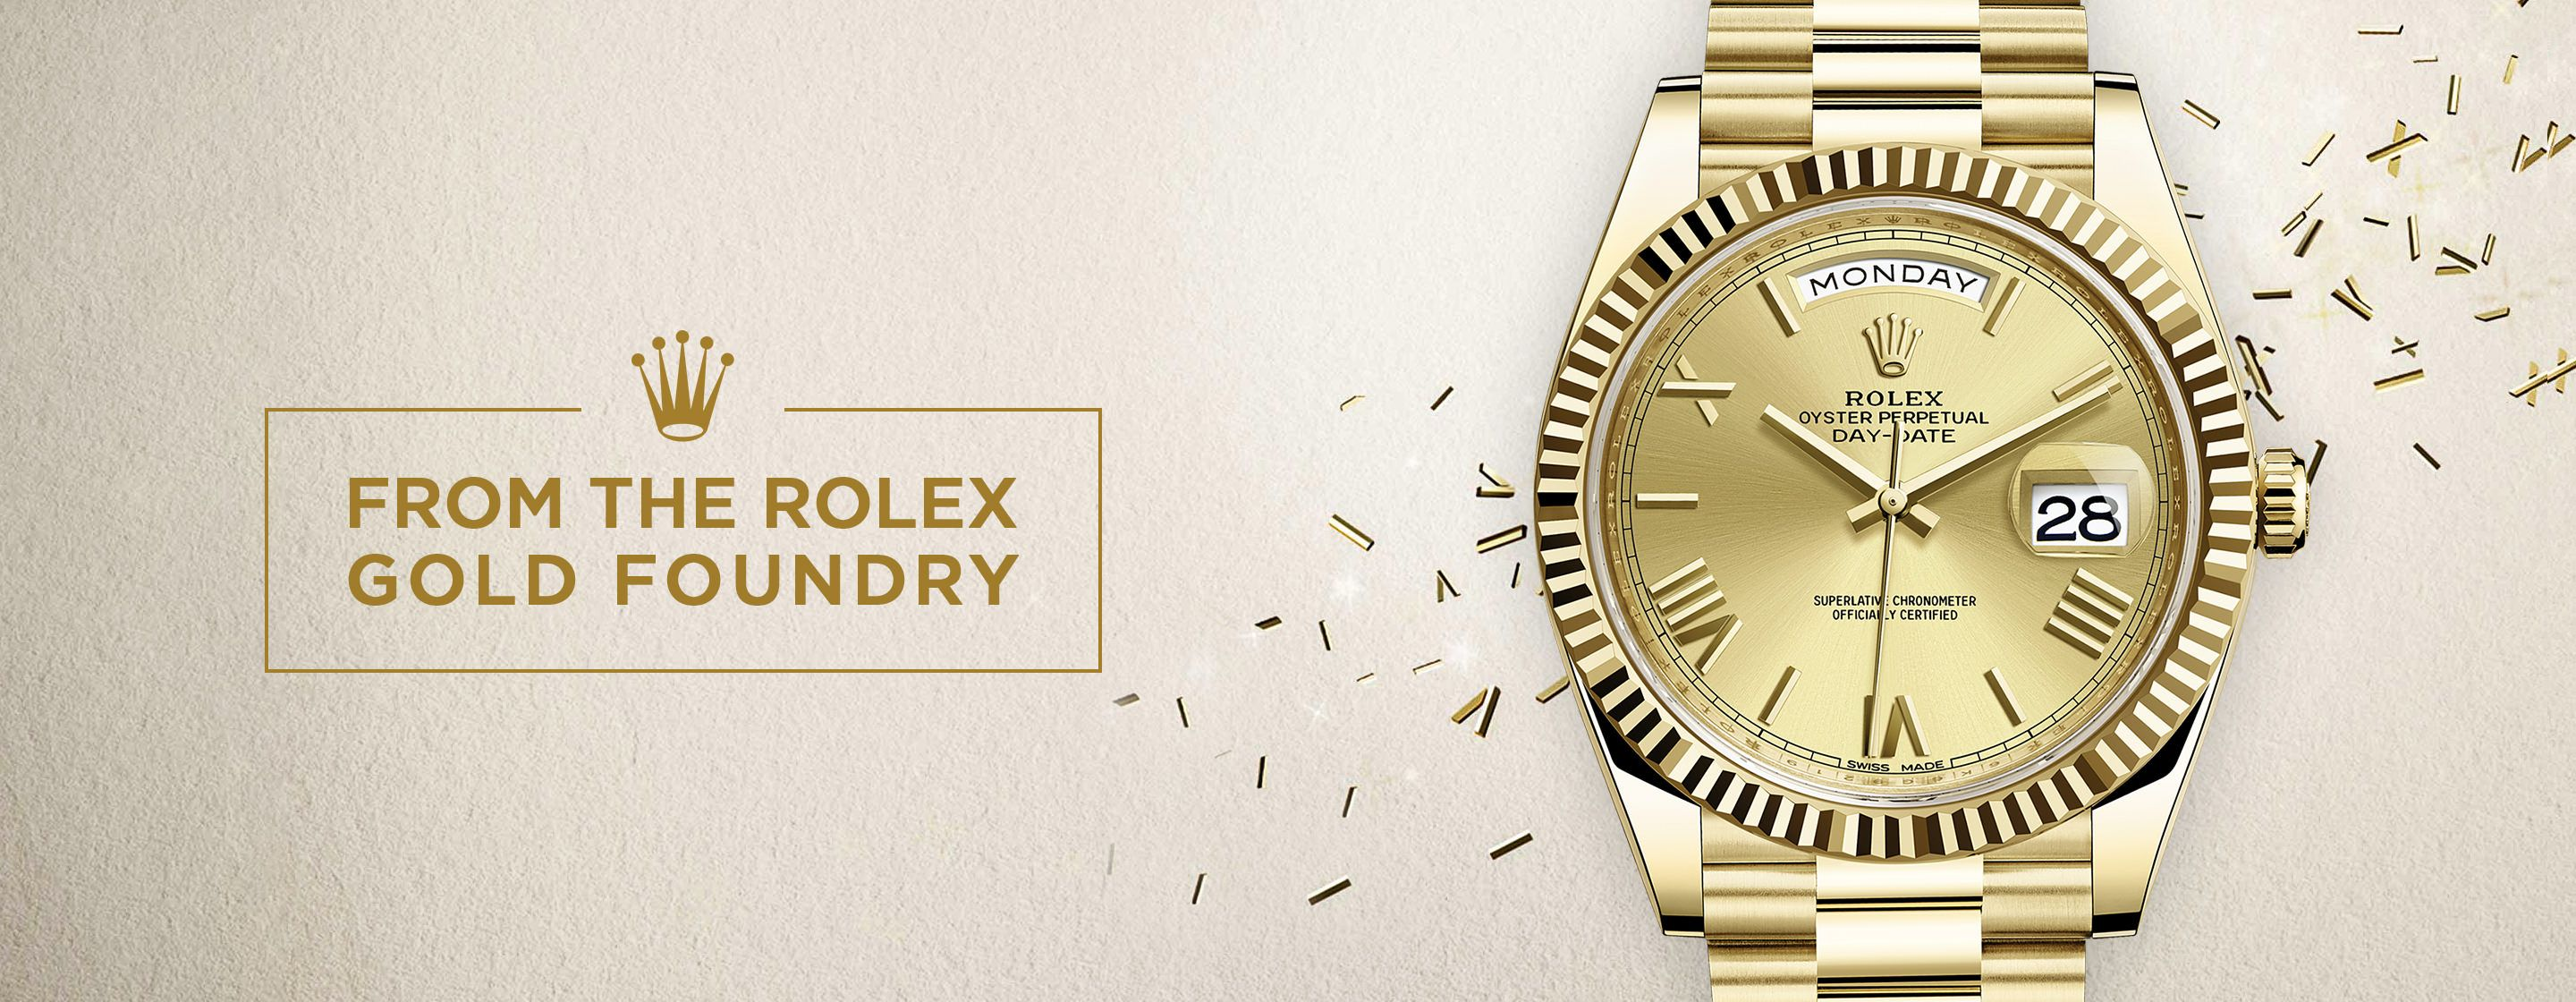 8af920fe896 Rolex Gold - Top 10 Best Rolex Gold watches in India - The Watch guide